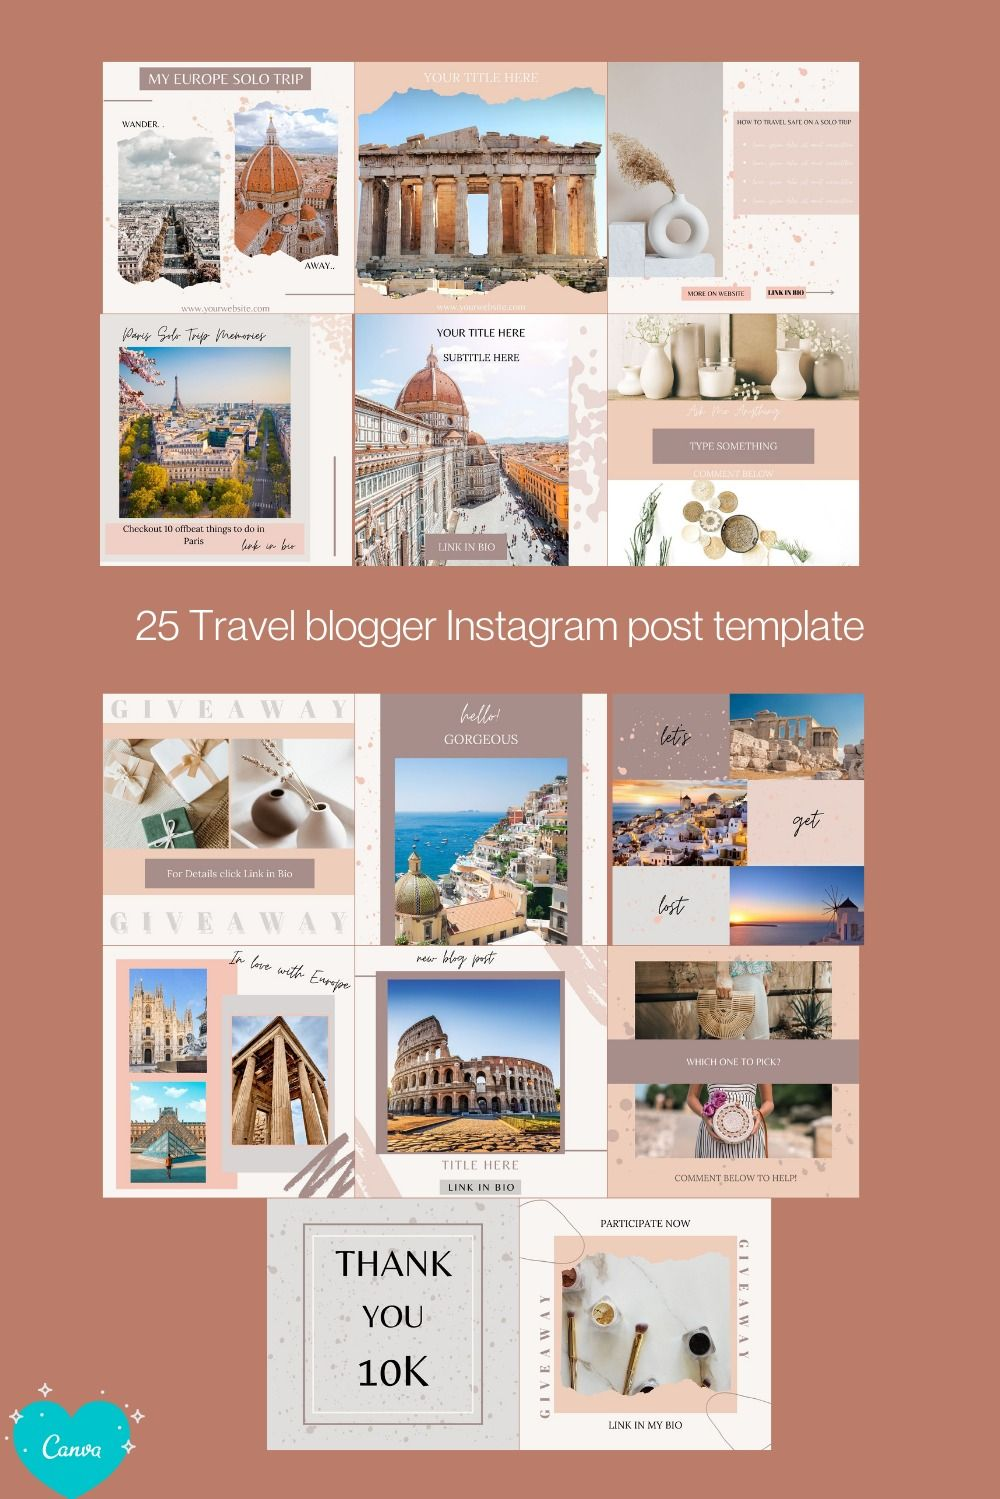 Travel Blogger Instagram Templates For Canva Social Media Etsy Instagram Template Design Instagram Template Travel Blogger Instagram